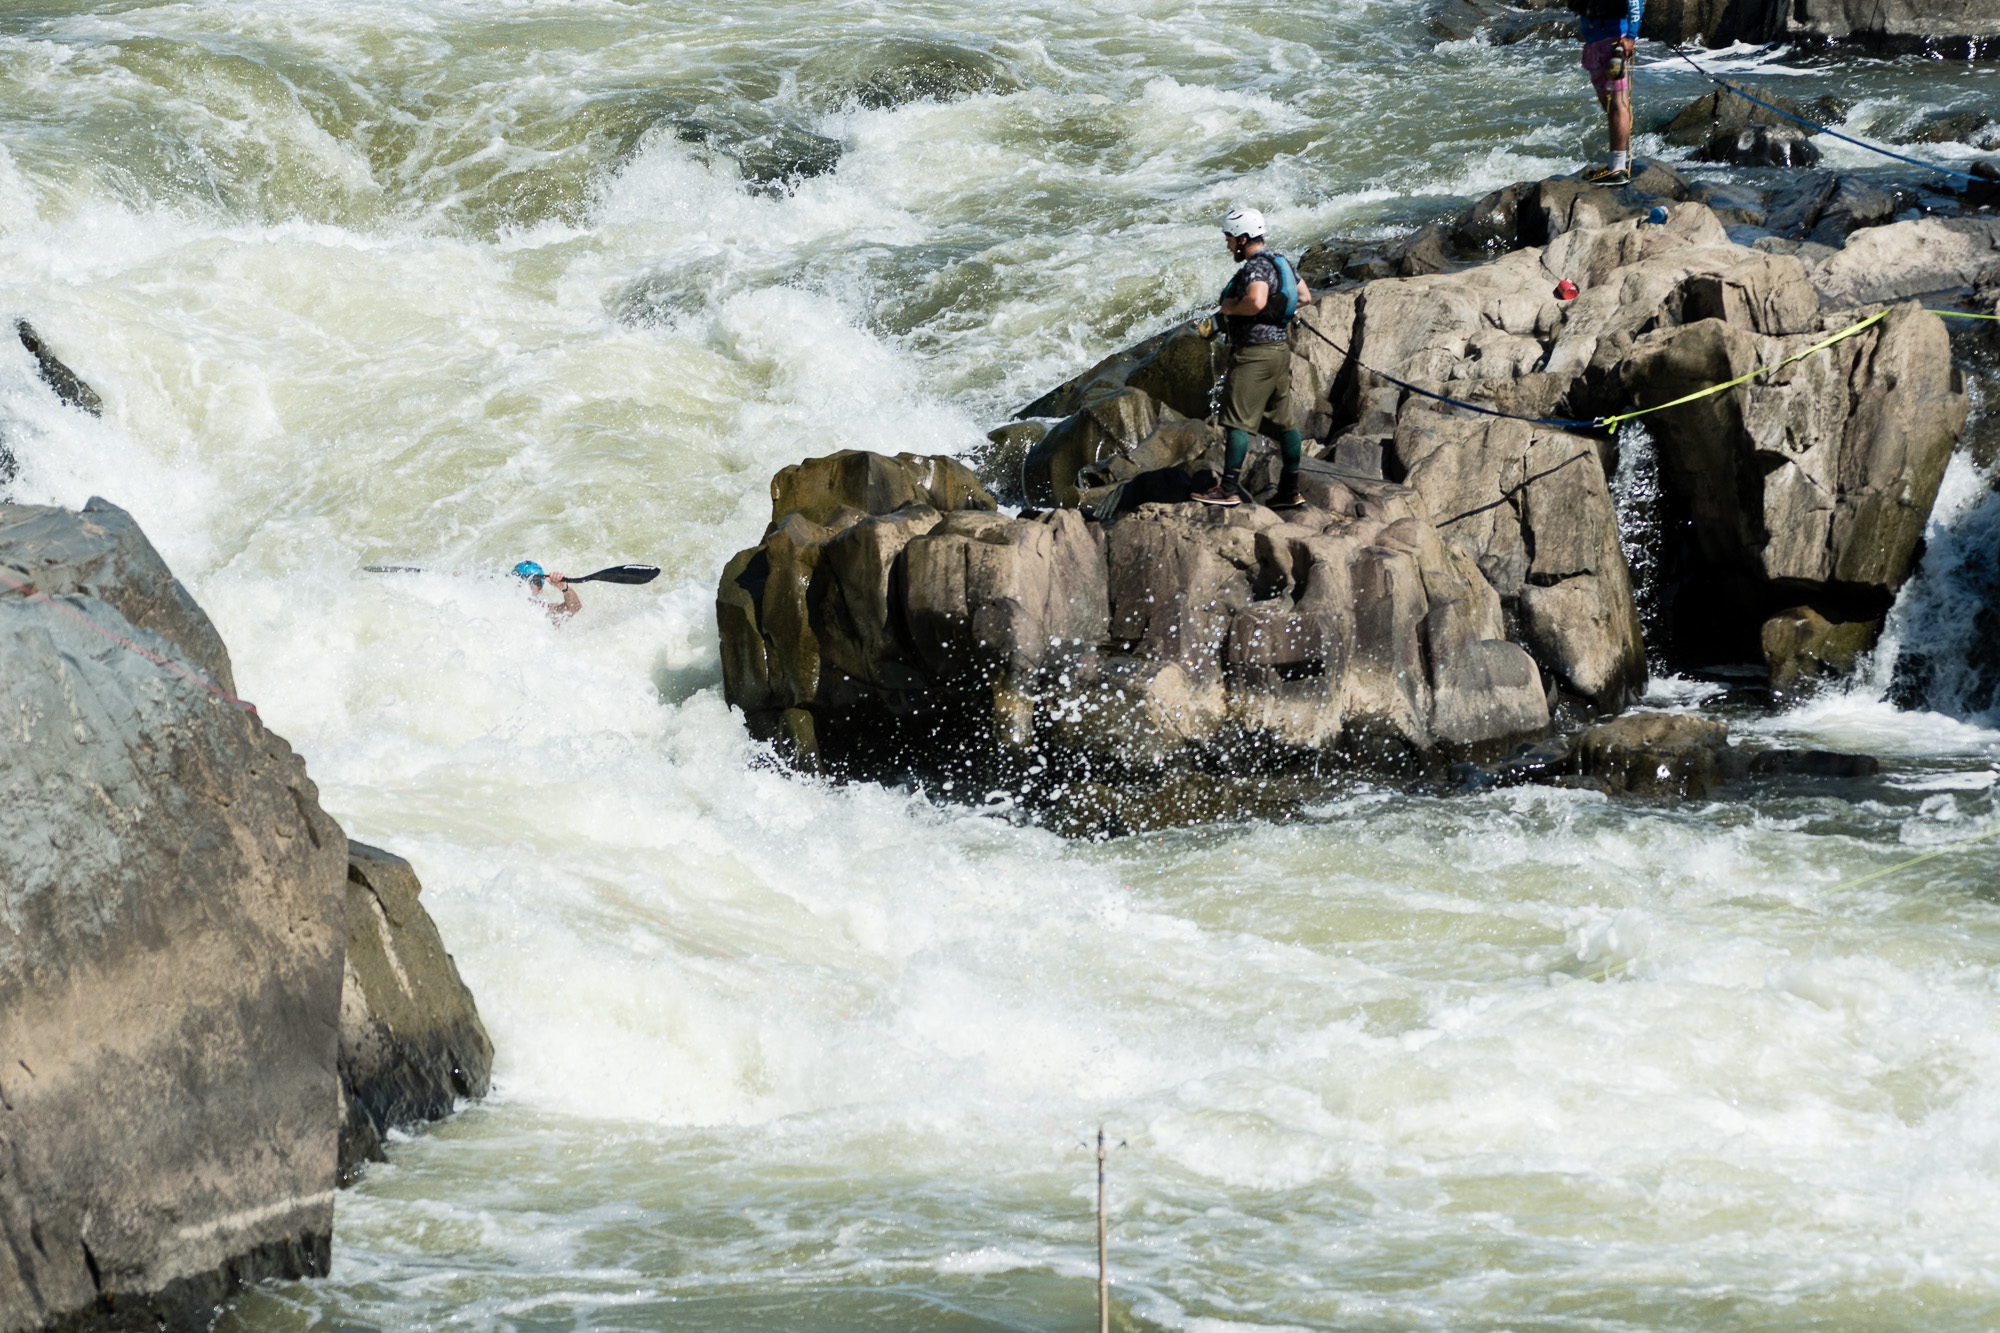 During the slalom event Jason Beakes almost disappears behind the wild water in S-Turn. The 2nd slalom gate can be seen at the bottom.